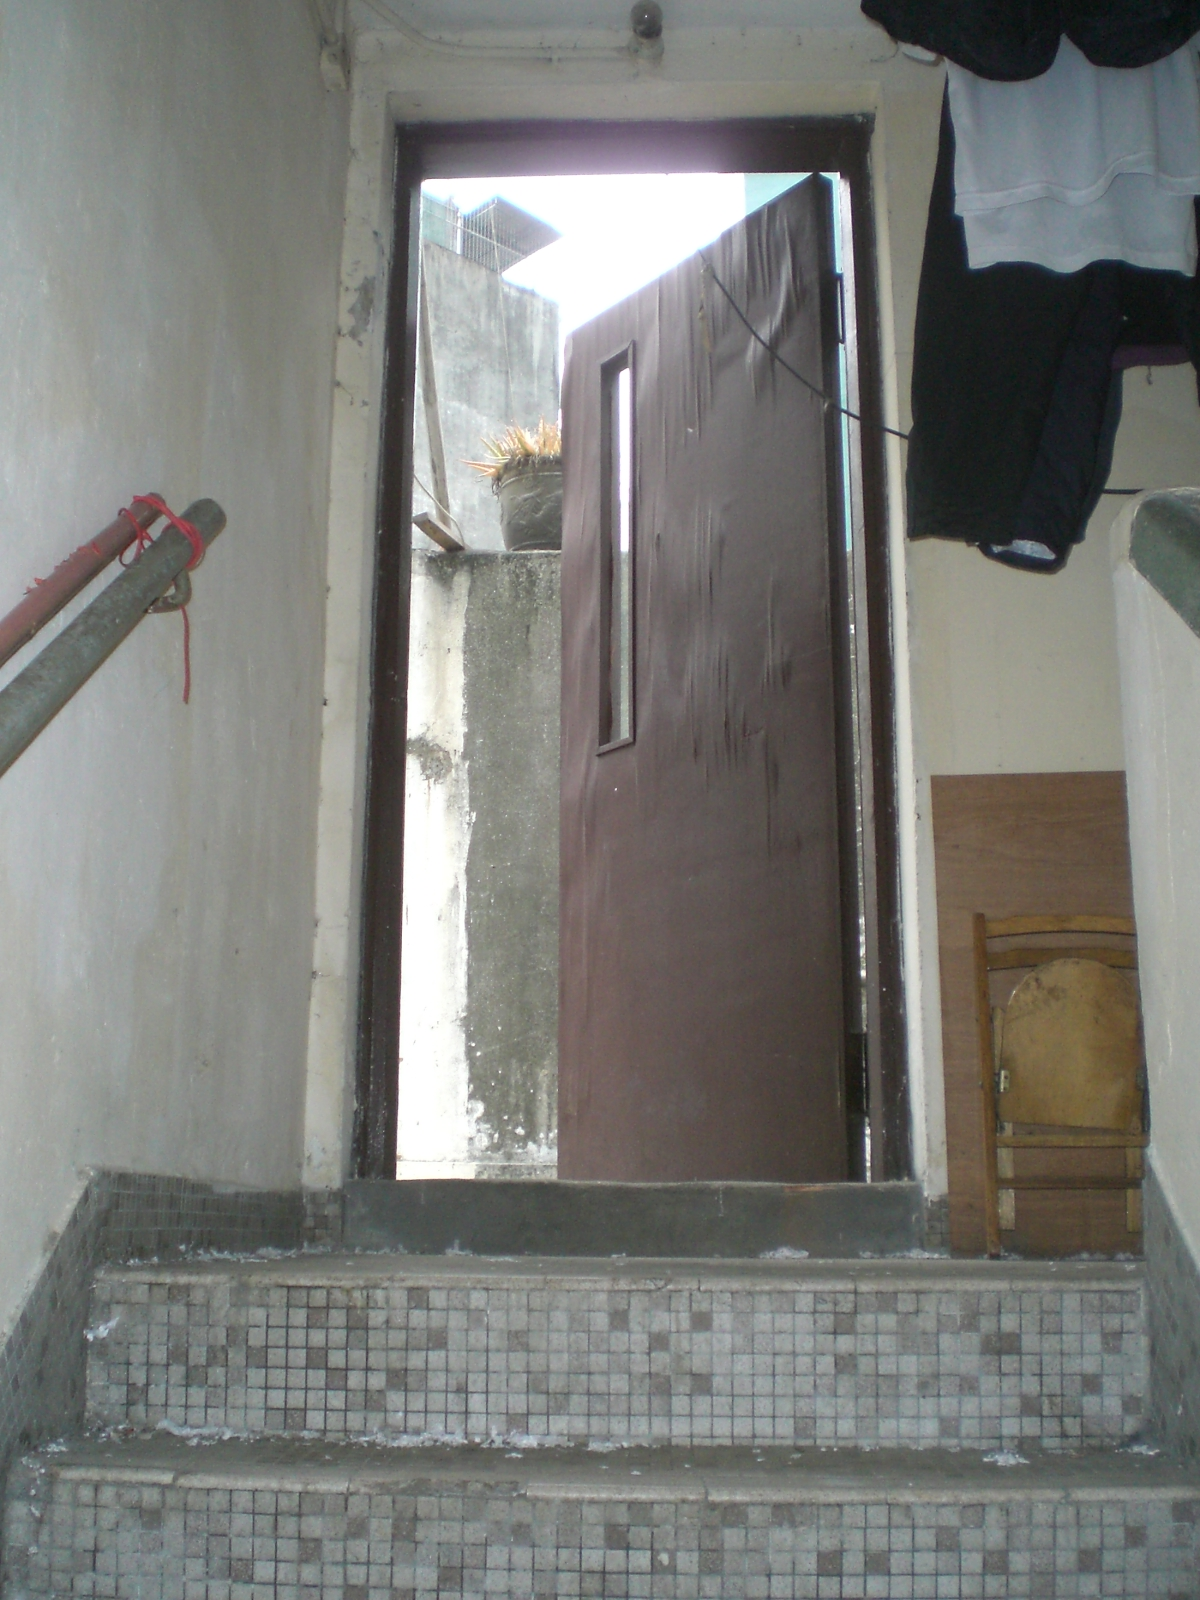 FileHK Sheung Wan Old House Stairs n Roof Wooden Door.JPG & File:HK Sheung Wan Old House Stairs n Roof Wooden Door.JPG ... pezcame.com